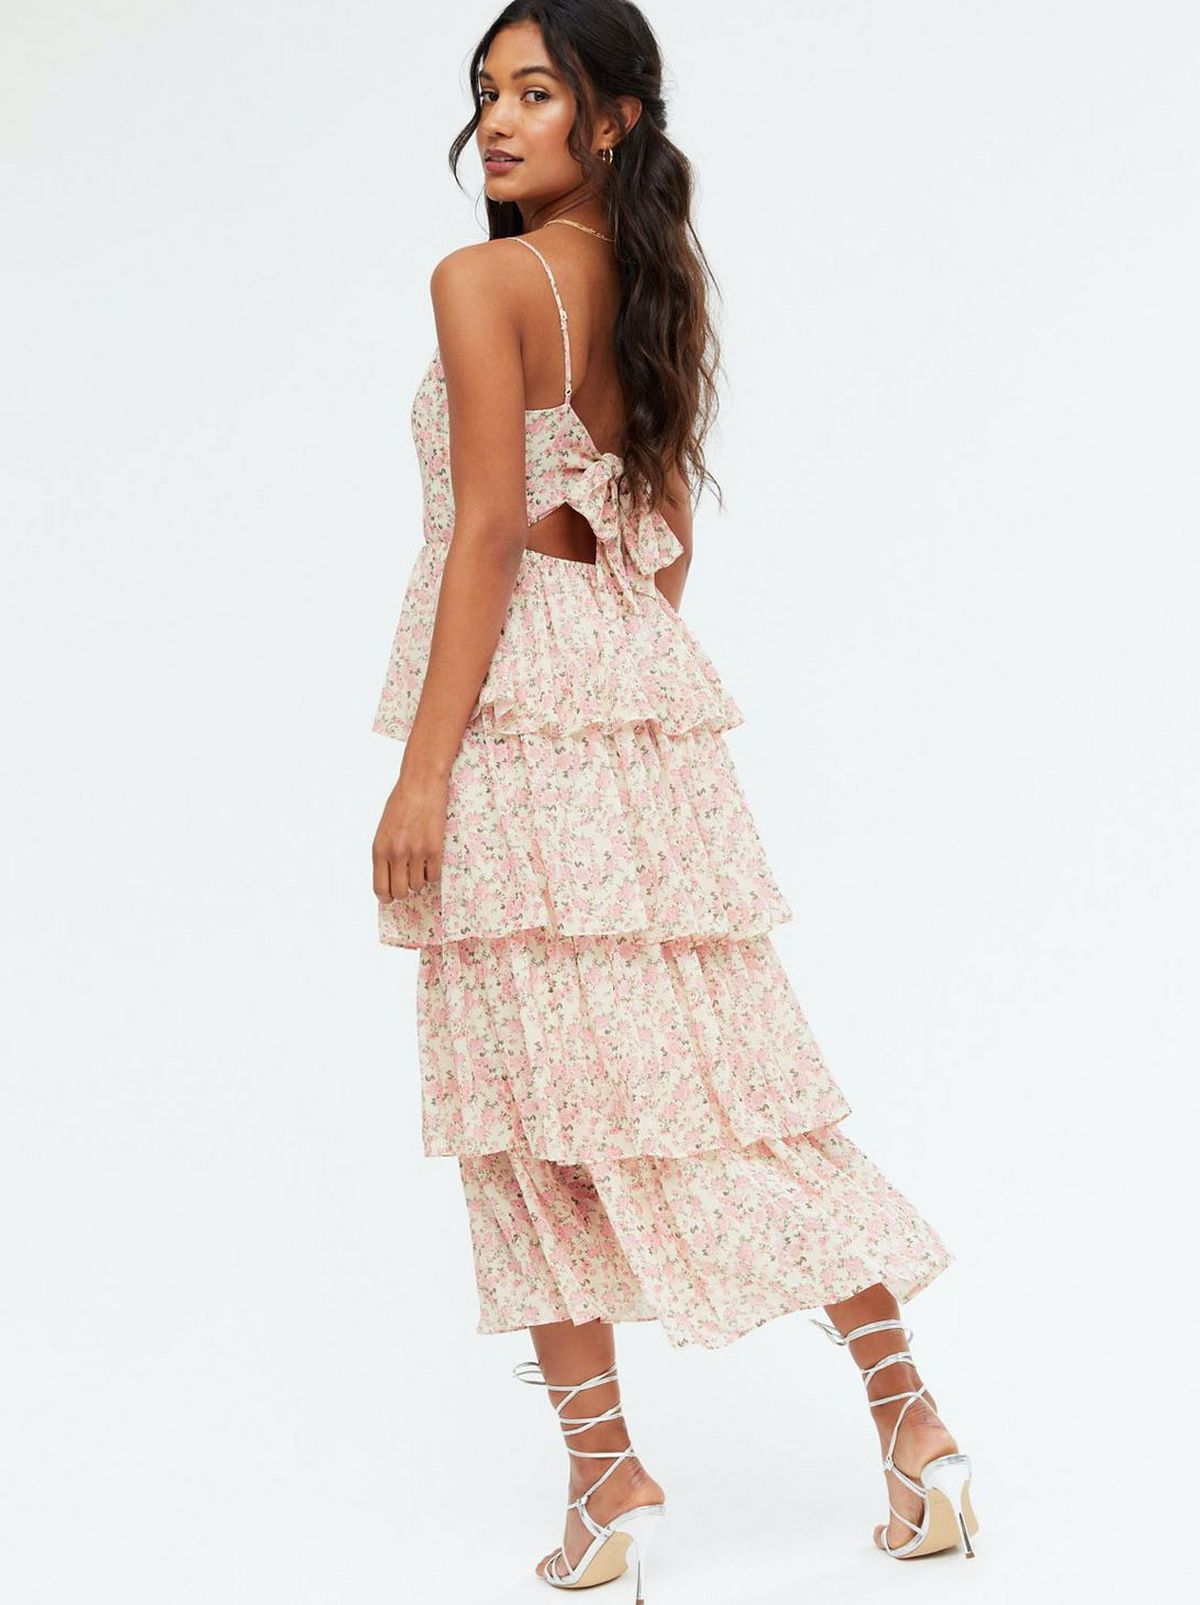 Woman wearing a pink ditsy floral tiered tie back midi dress and strappy heels